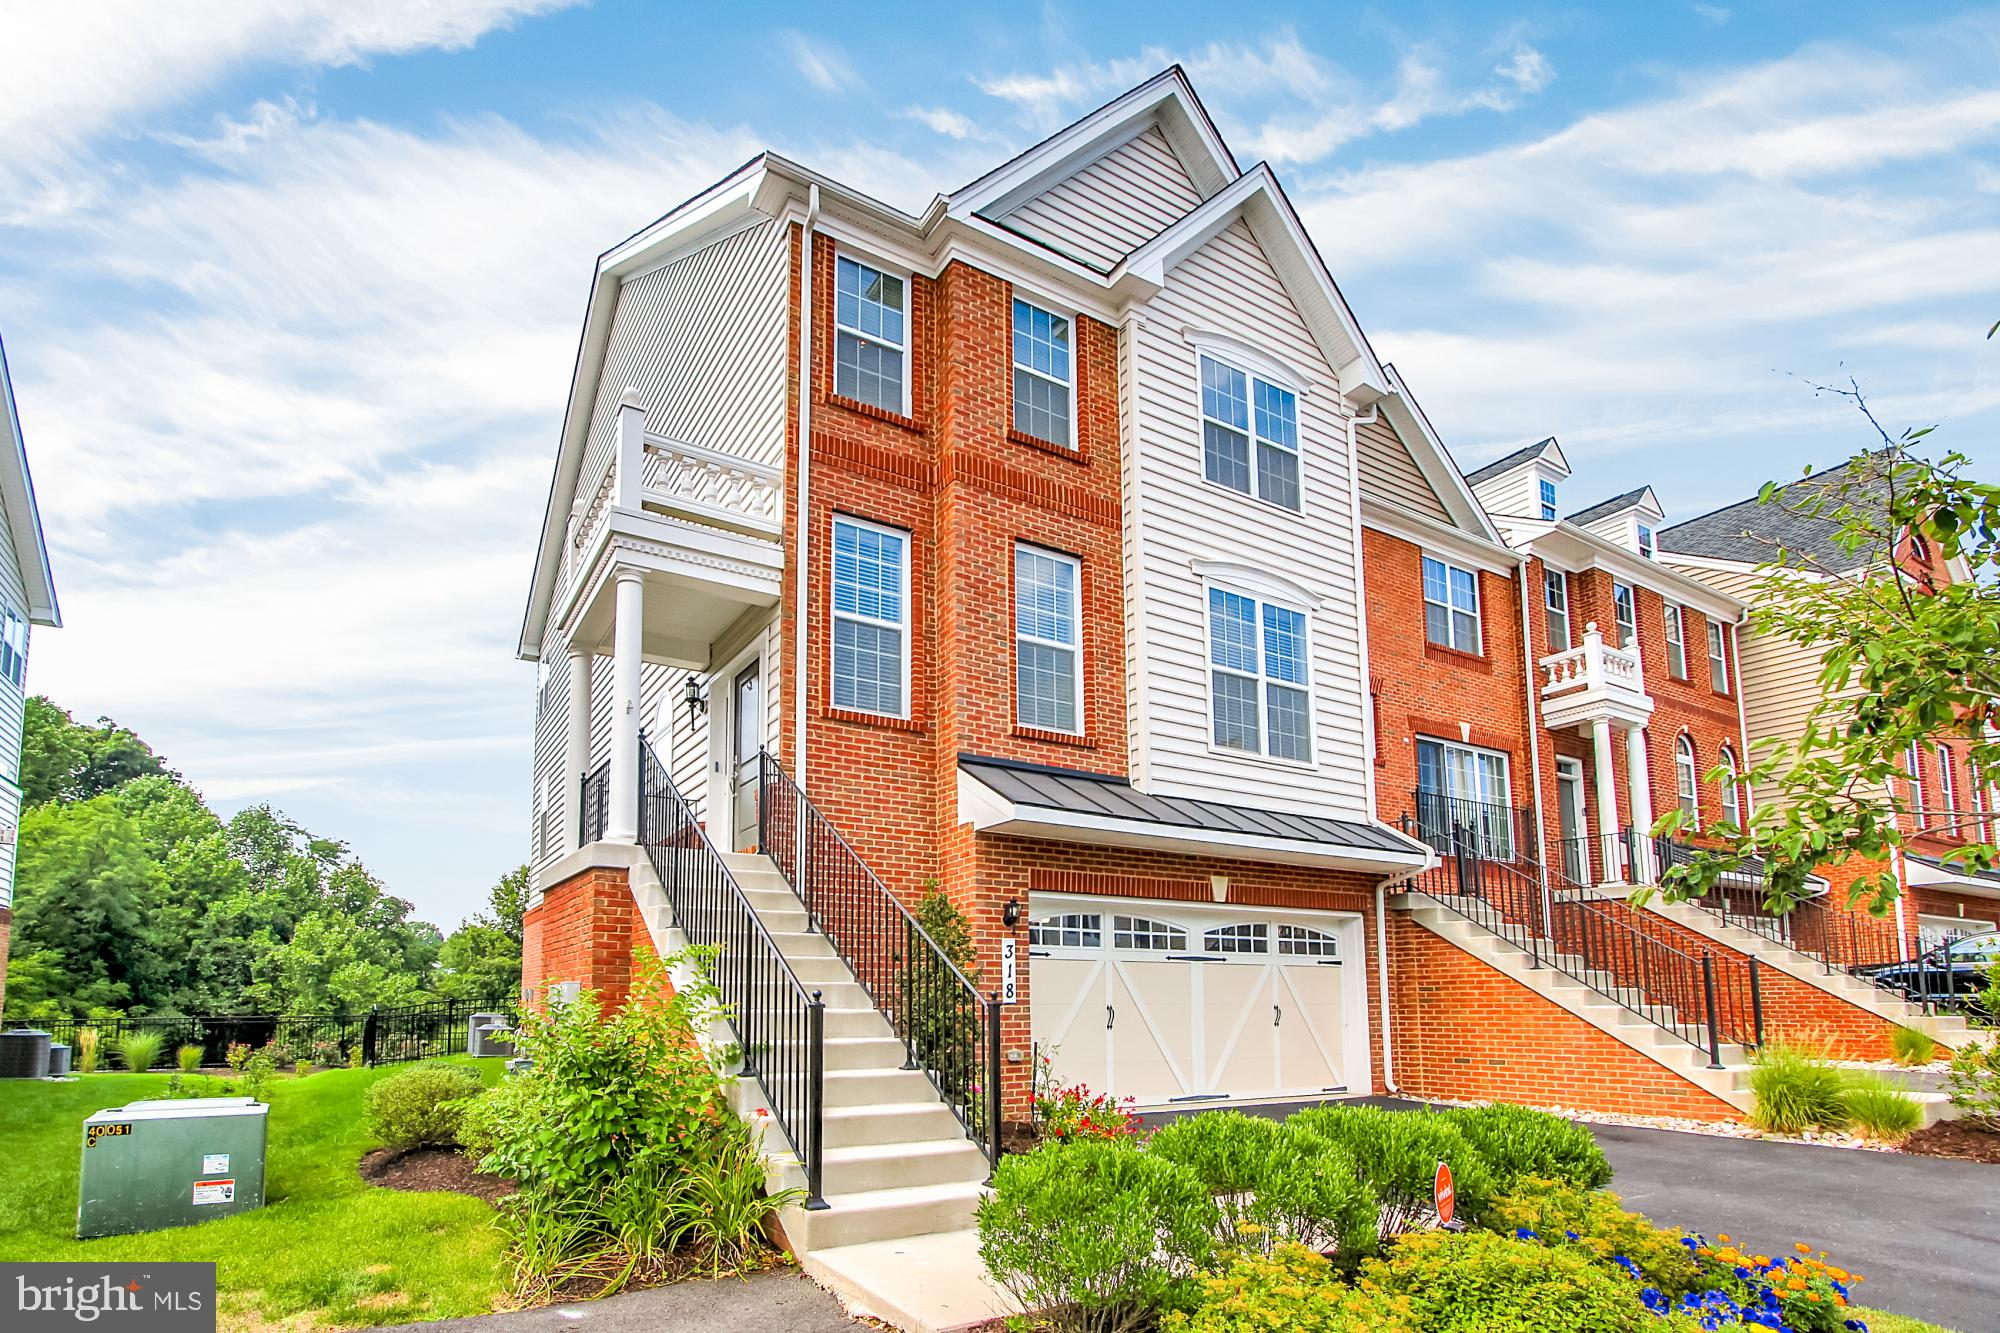 Beautiful EOG Townhome in Laurel Ridge!  Large Floorplan w/ Bump out, situated on one of the largest TH lots in the community.  Enjoy beautiful (and protected) nature views from the oversized trex deck.  Upgraded options throughout, including gourmet kitchen with beautiful granite counters, SS appliances. Versatile and Open concept on the main, provides great space for entertaining.  Large Master Bedroom, 2 WIC, Spa Bathroom.  2 Bedrooms and Hall bath complete upper level, with fully finished walk out lower level w/ full bath leaded to fenced yard.   2 car sealed garage, and enjoy the overflow parking beside the home!